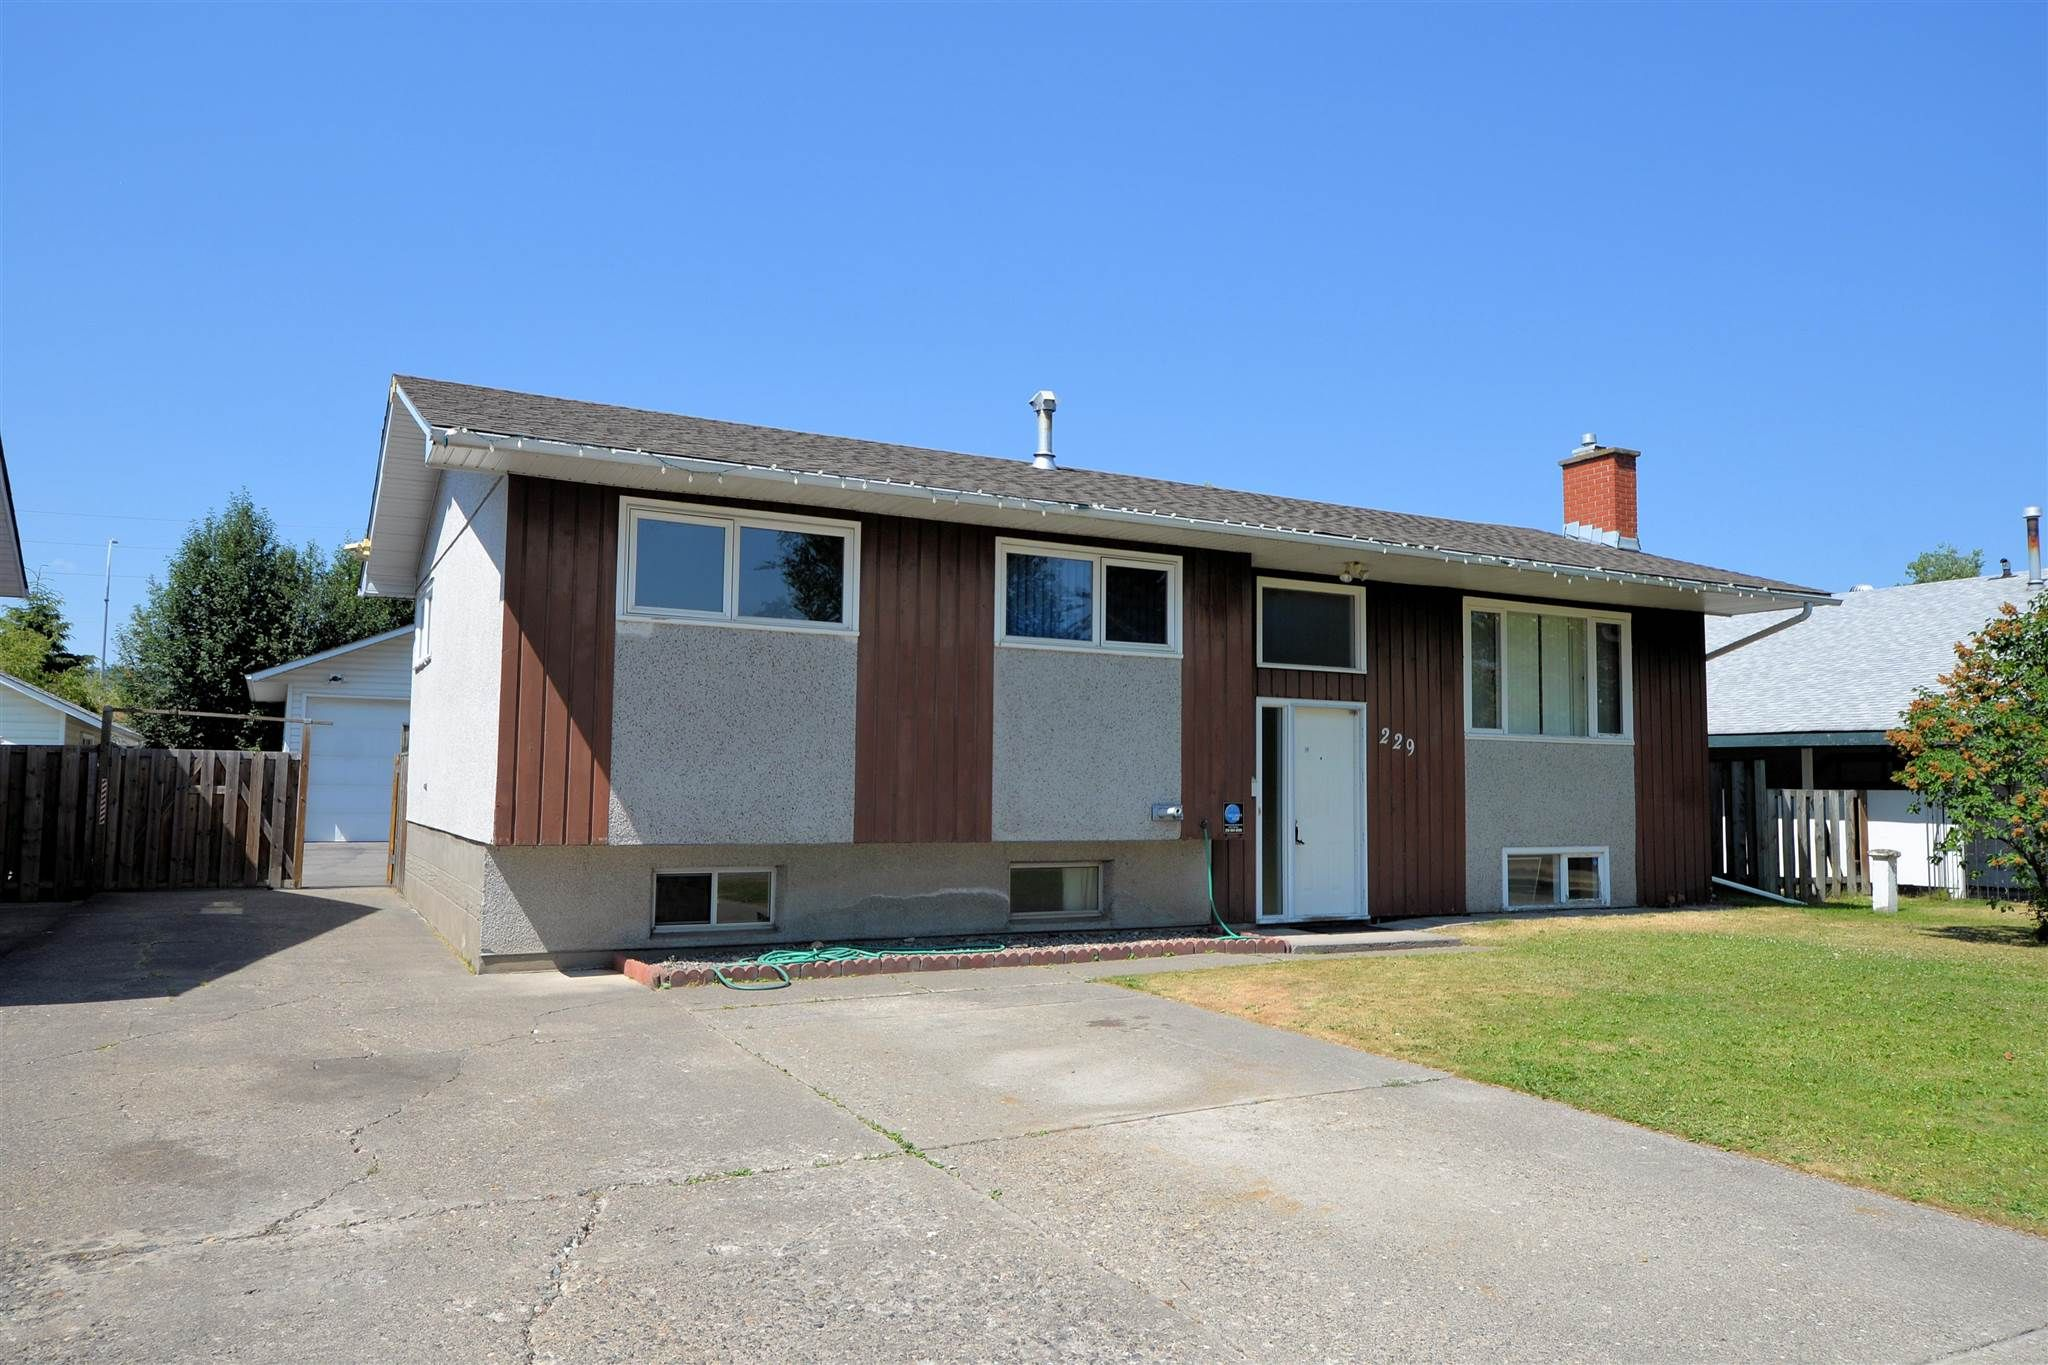 """Main Photo: 229 WILSON Crescent in Prince George: Perry House for sale in """"Van Bien / Candy Cane Lane"""" (PG City West (Zone 71))  : MLS®# R2599227"""